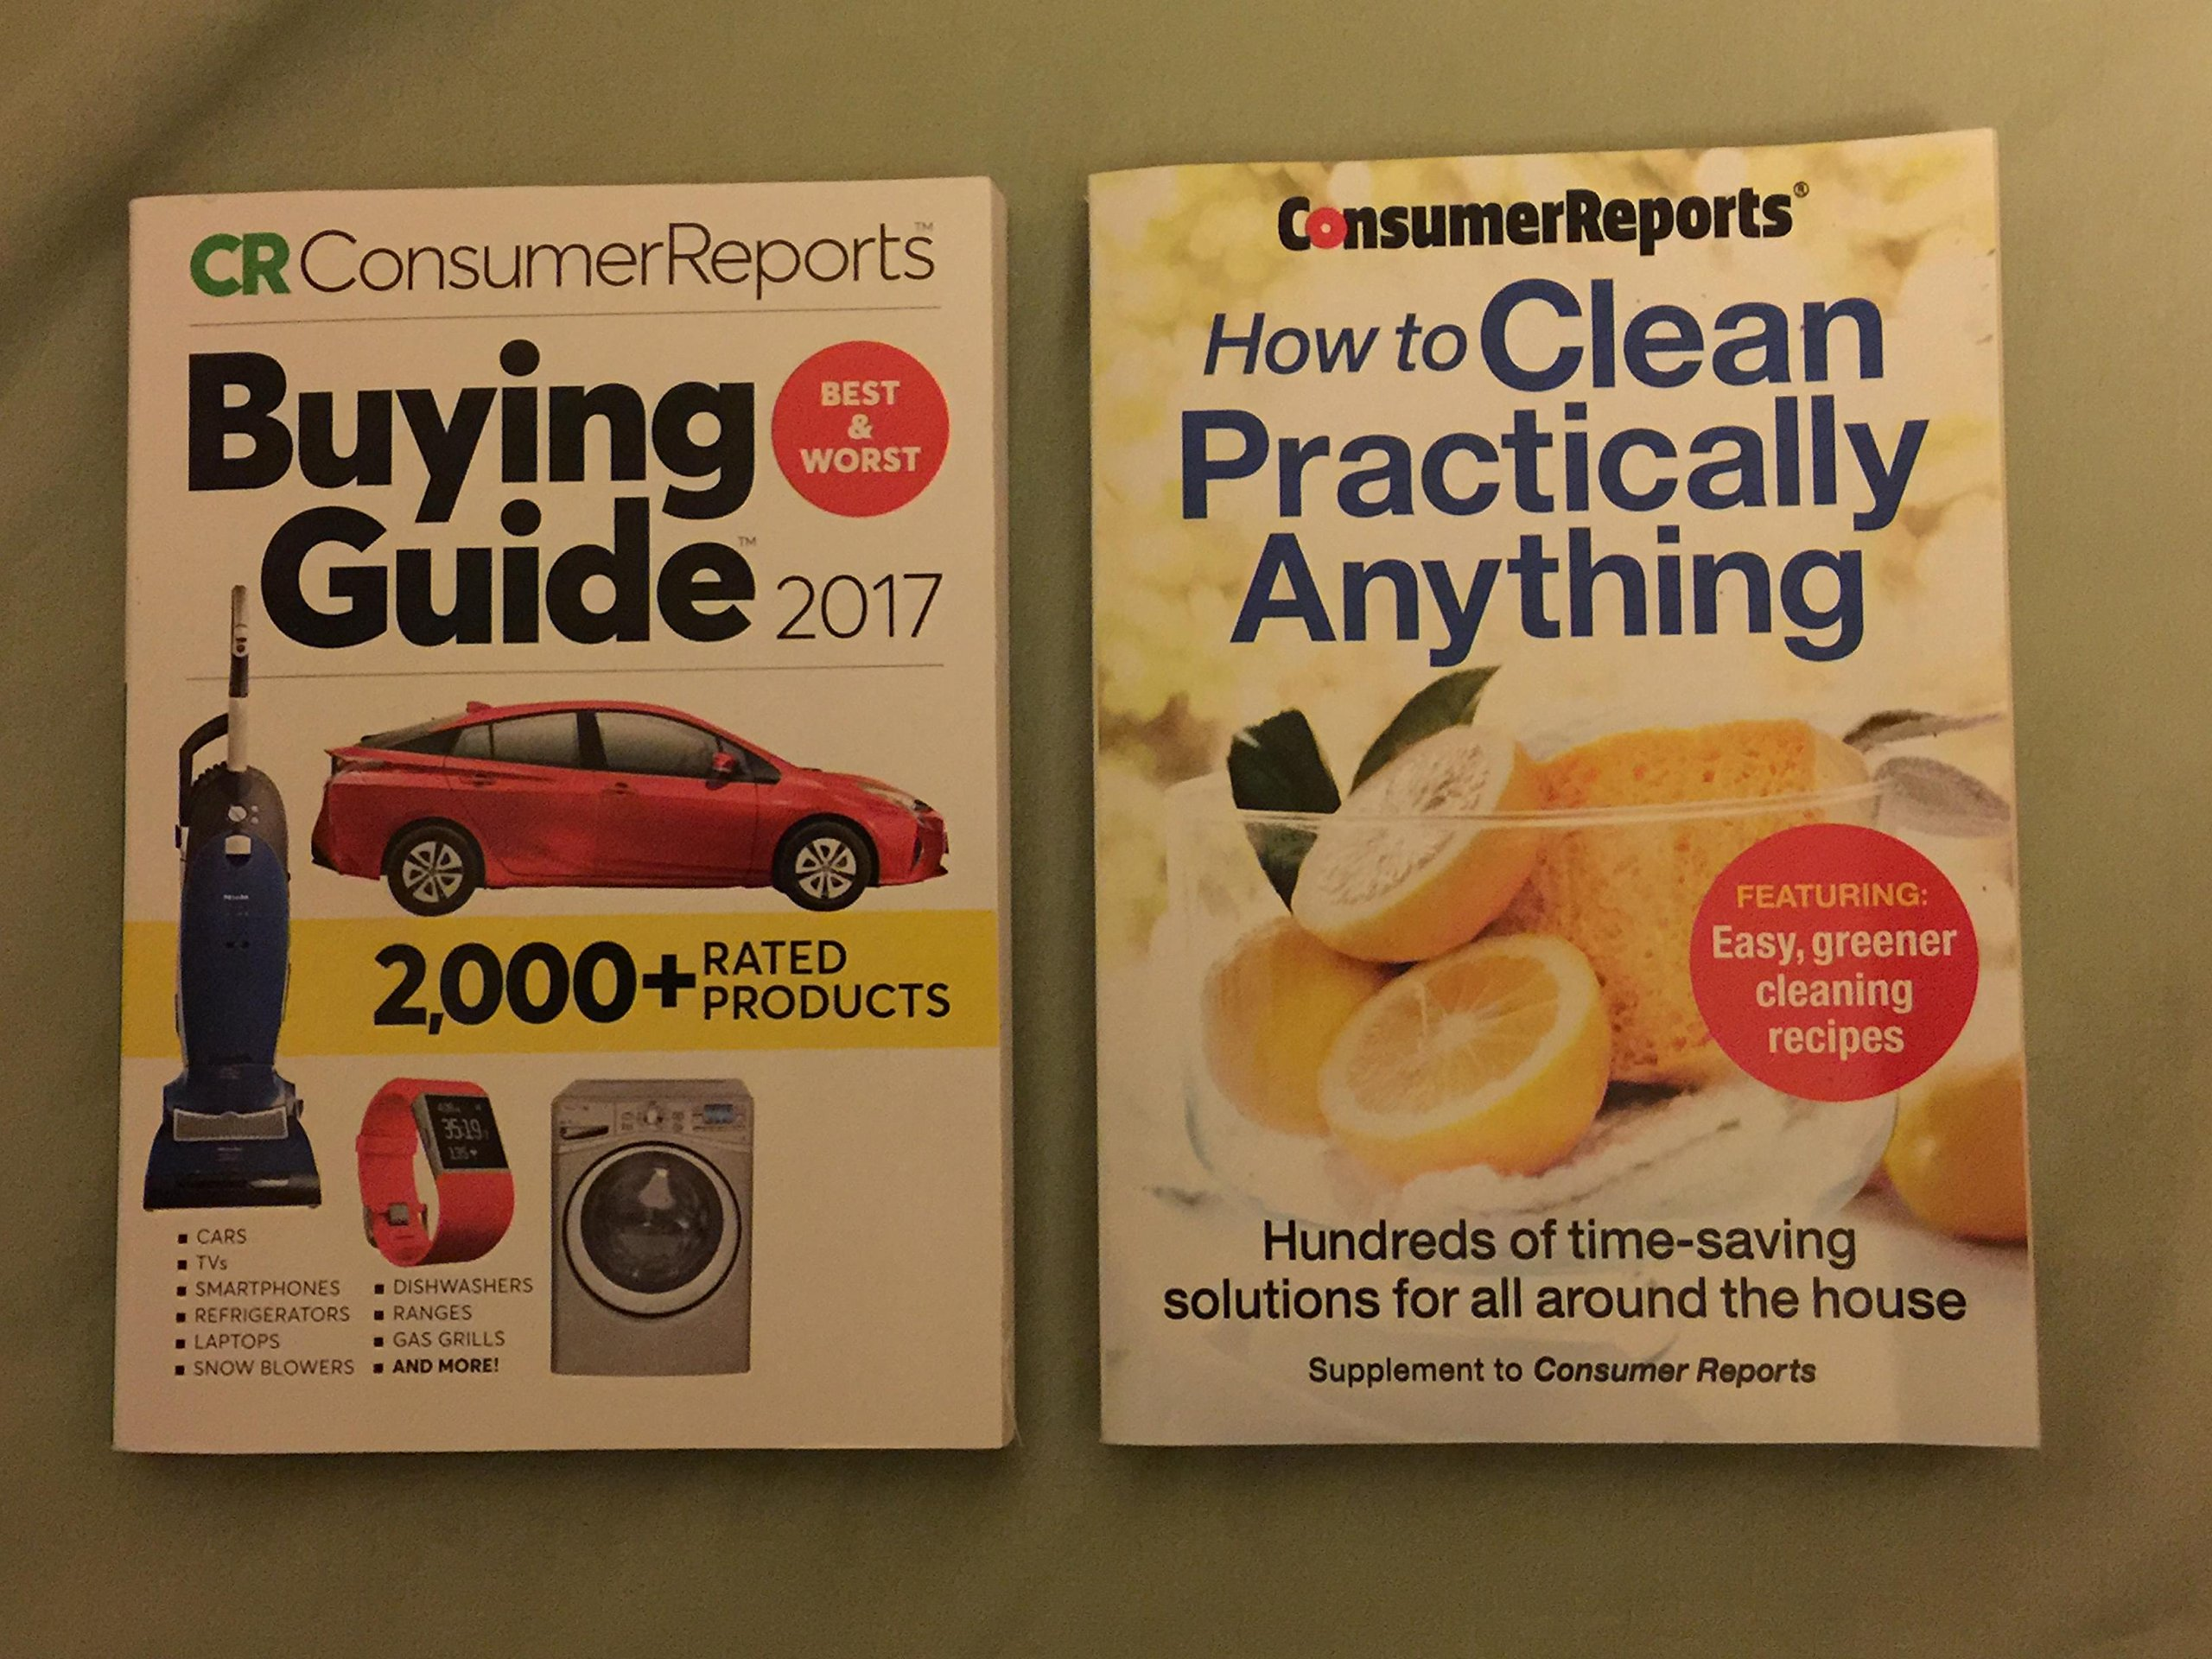 consumer reports buying guide 2017 consumer reports various consumer reports buying guide 2017 consumer reports various amazon com books